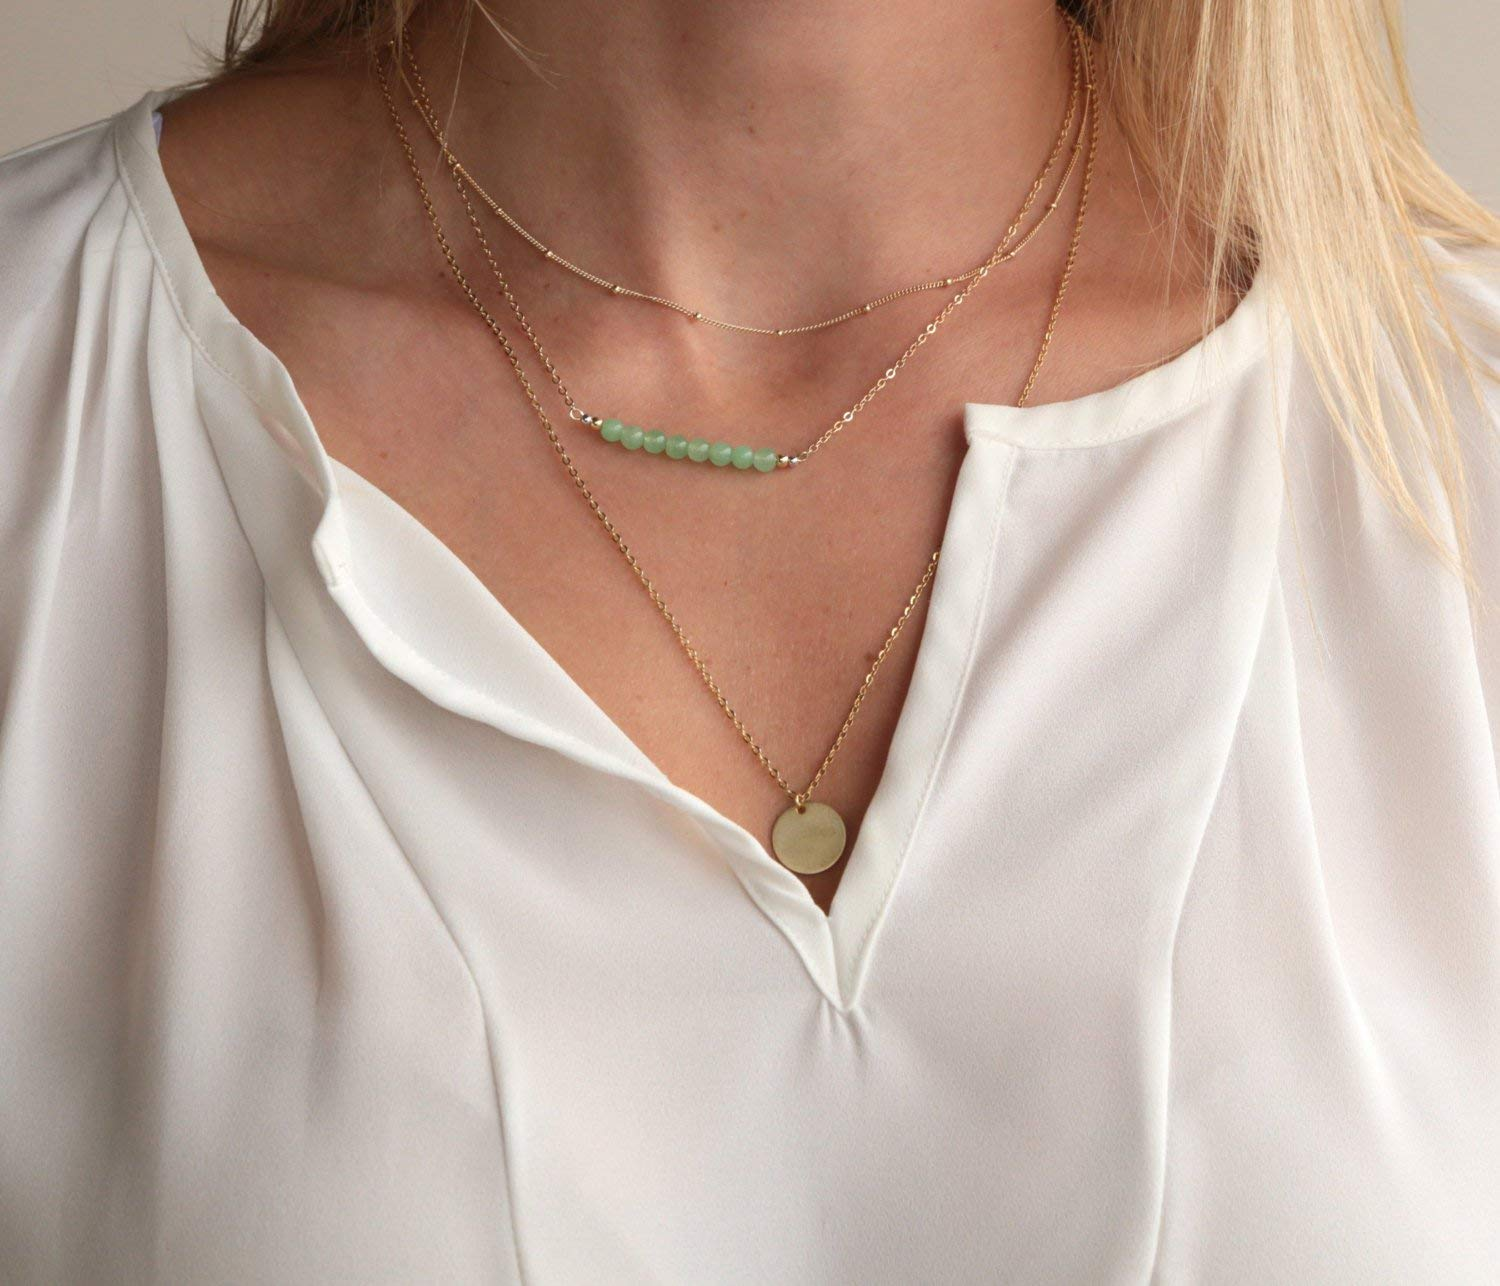 Layered Jewelry Set // Dew Drop Chain / Layered Necklace / MultiStrand Necklace / Beaded Necklace / Layered Necklace Set / Gift for Her / Gold Silver / Bridesmaid